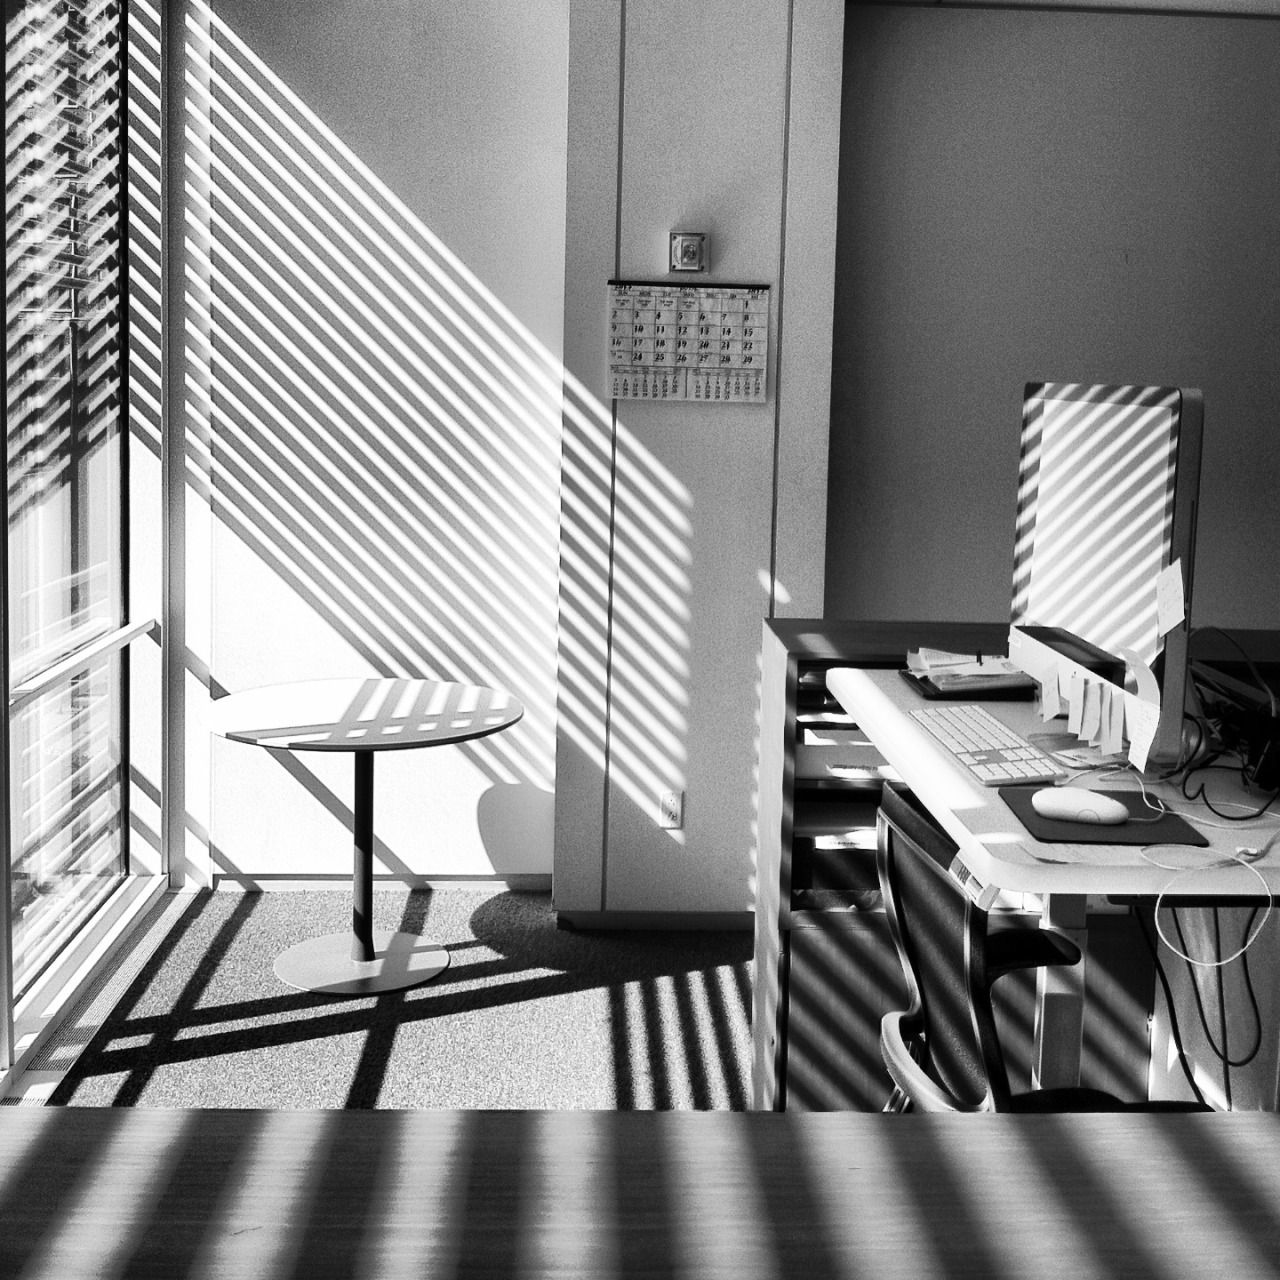 © Kathy Ryan, 2013, Mysterious shadows, Renzo Pianos New York Times Building